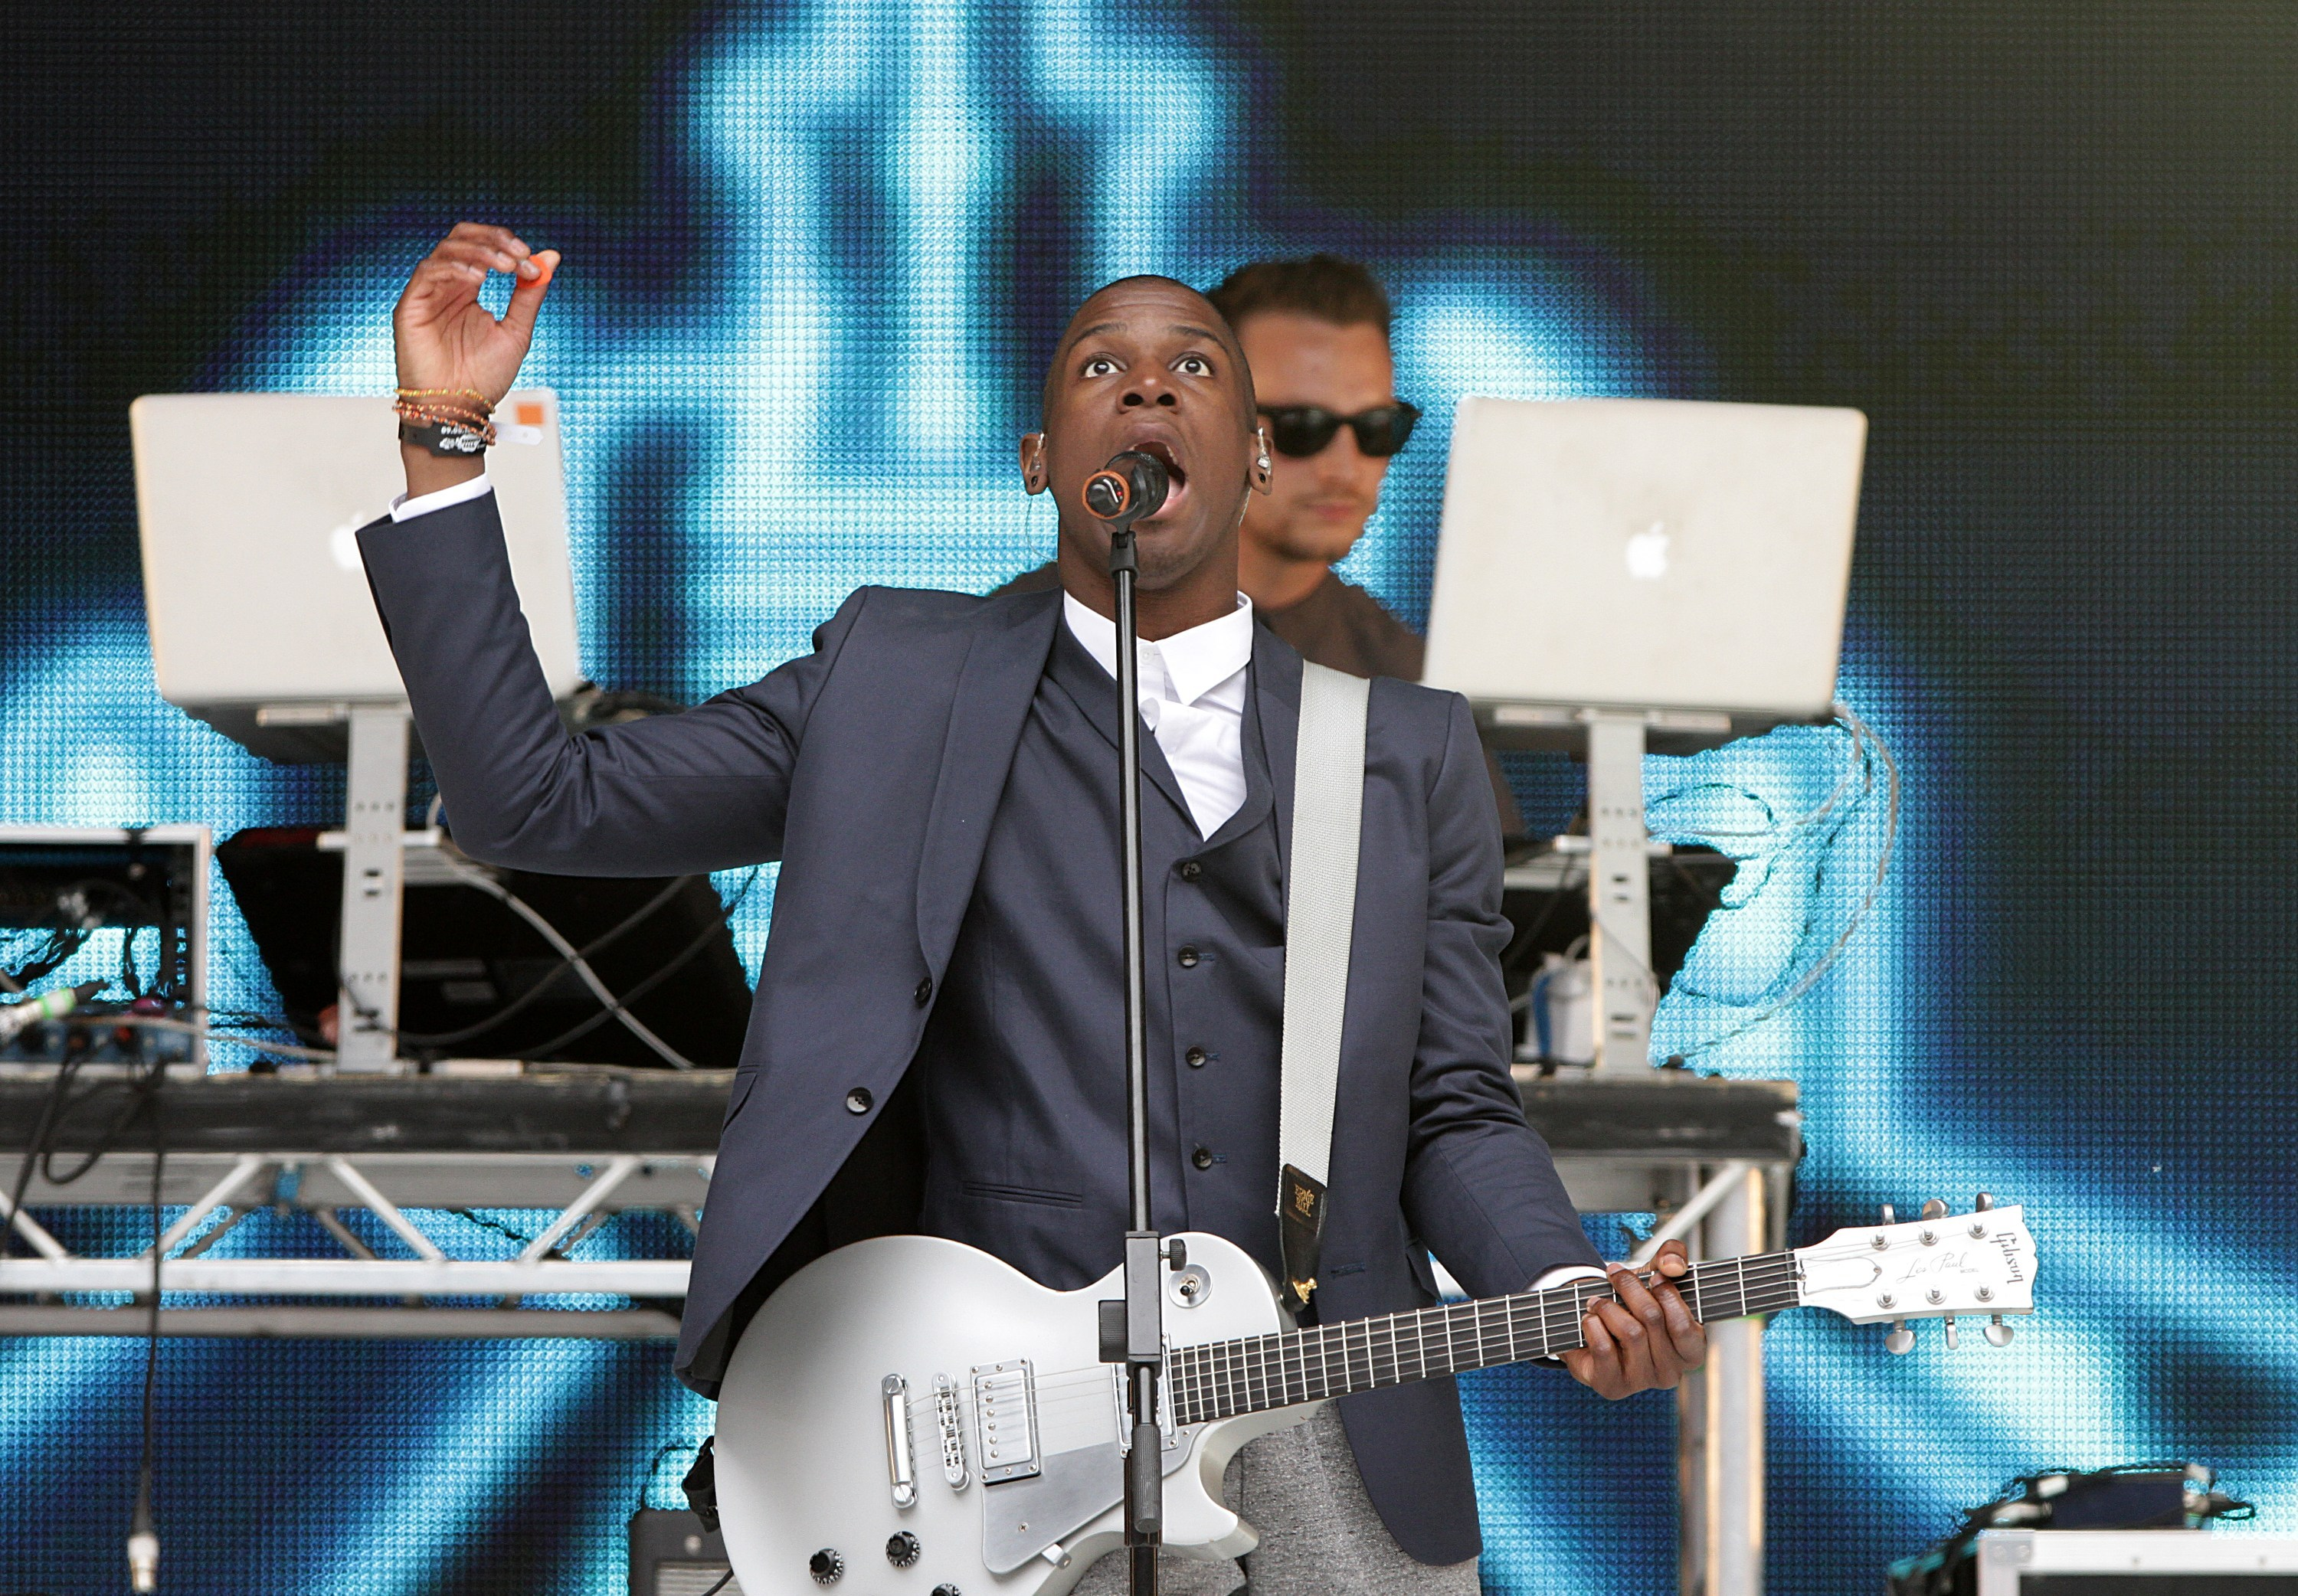 Camp Bestival 2013: 10 acts to watch